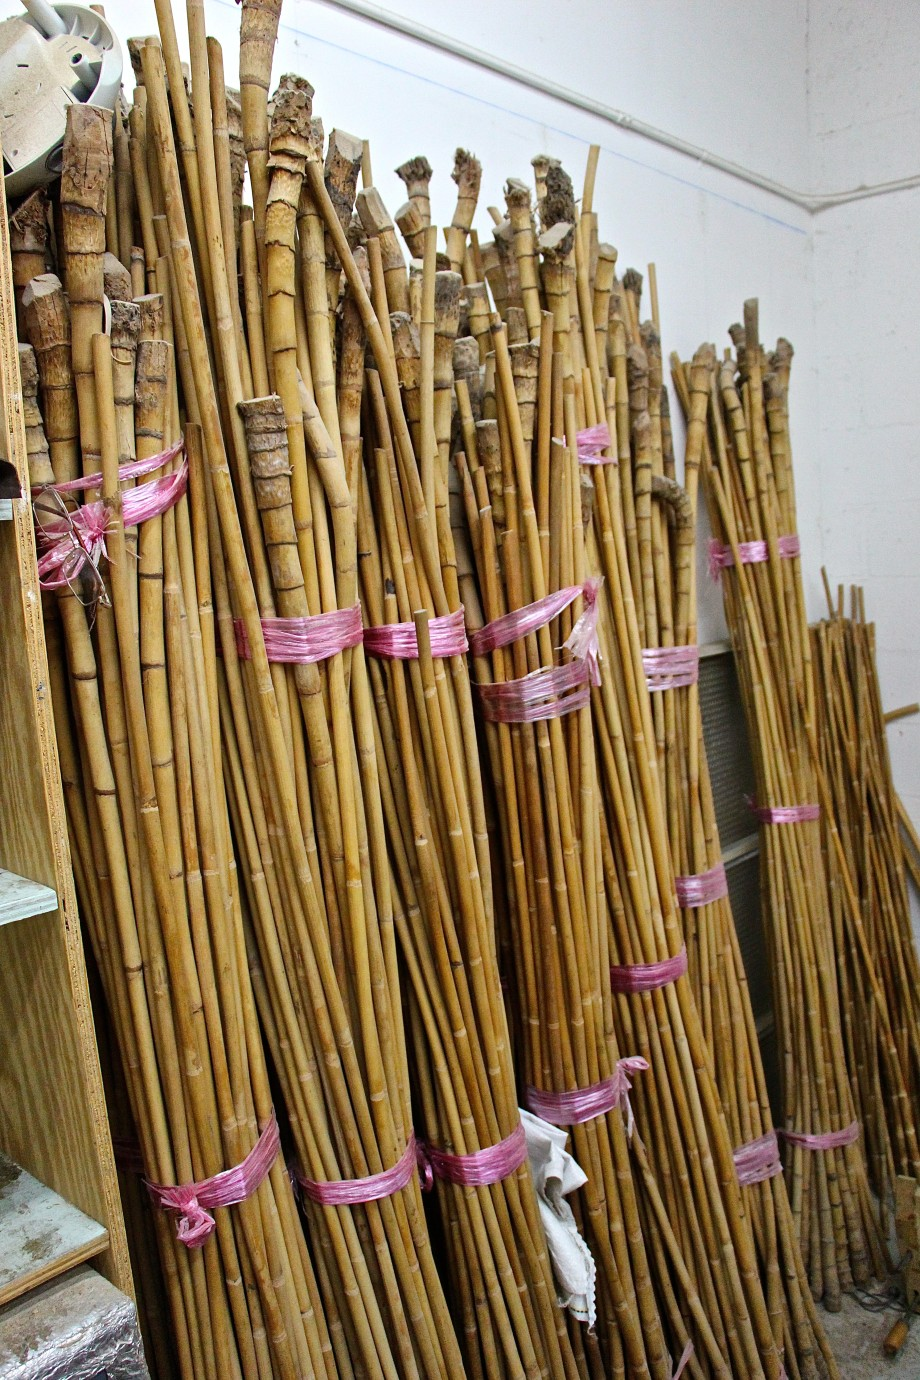 Mallet canes at Tato's Mallets